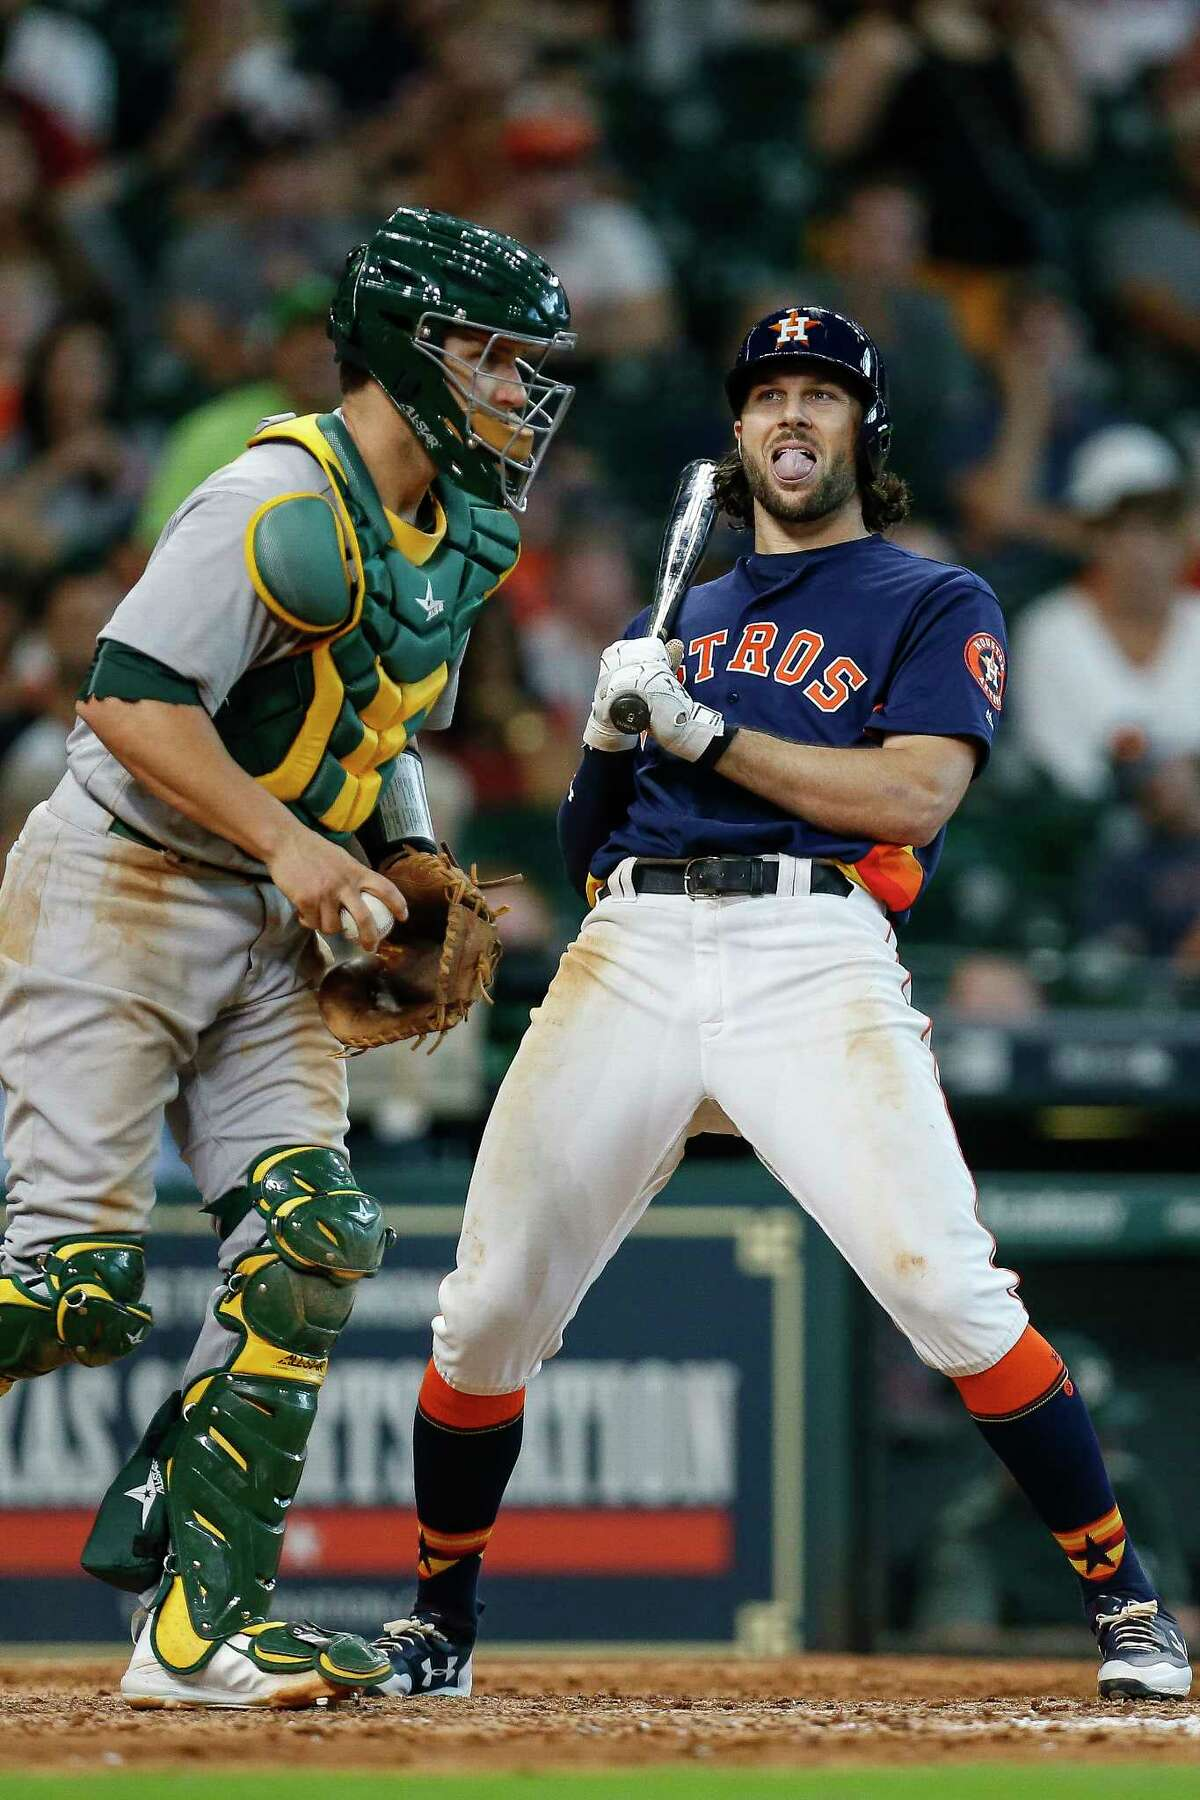 Houston Astros center fielder Jake Marisnick (6) reacts to being struck out looking as the Houston Astros lose 3-2 to the Oakland Athletics in the ninth inning at Minute Maid Park Sunday, Aug. 20, 2017 in Houston.